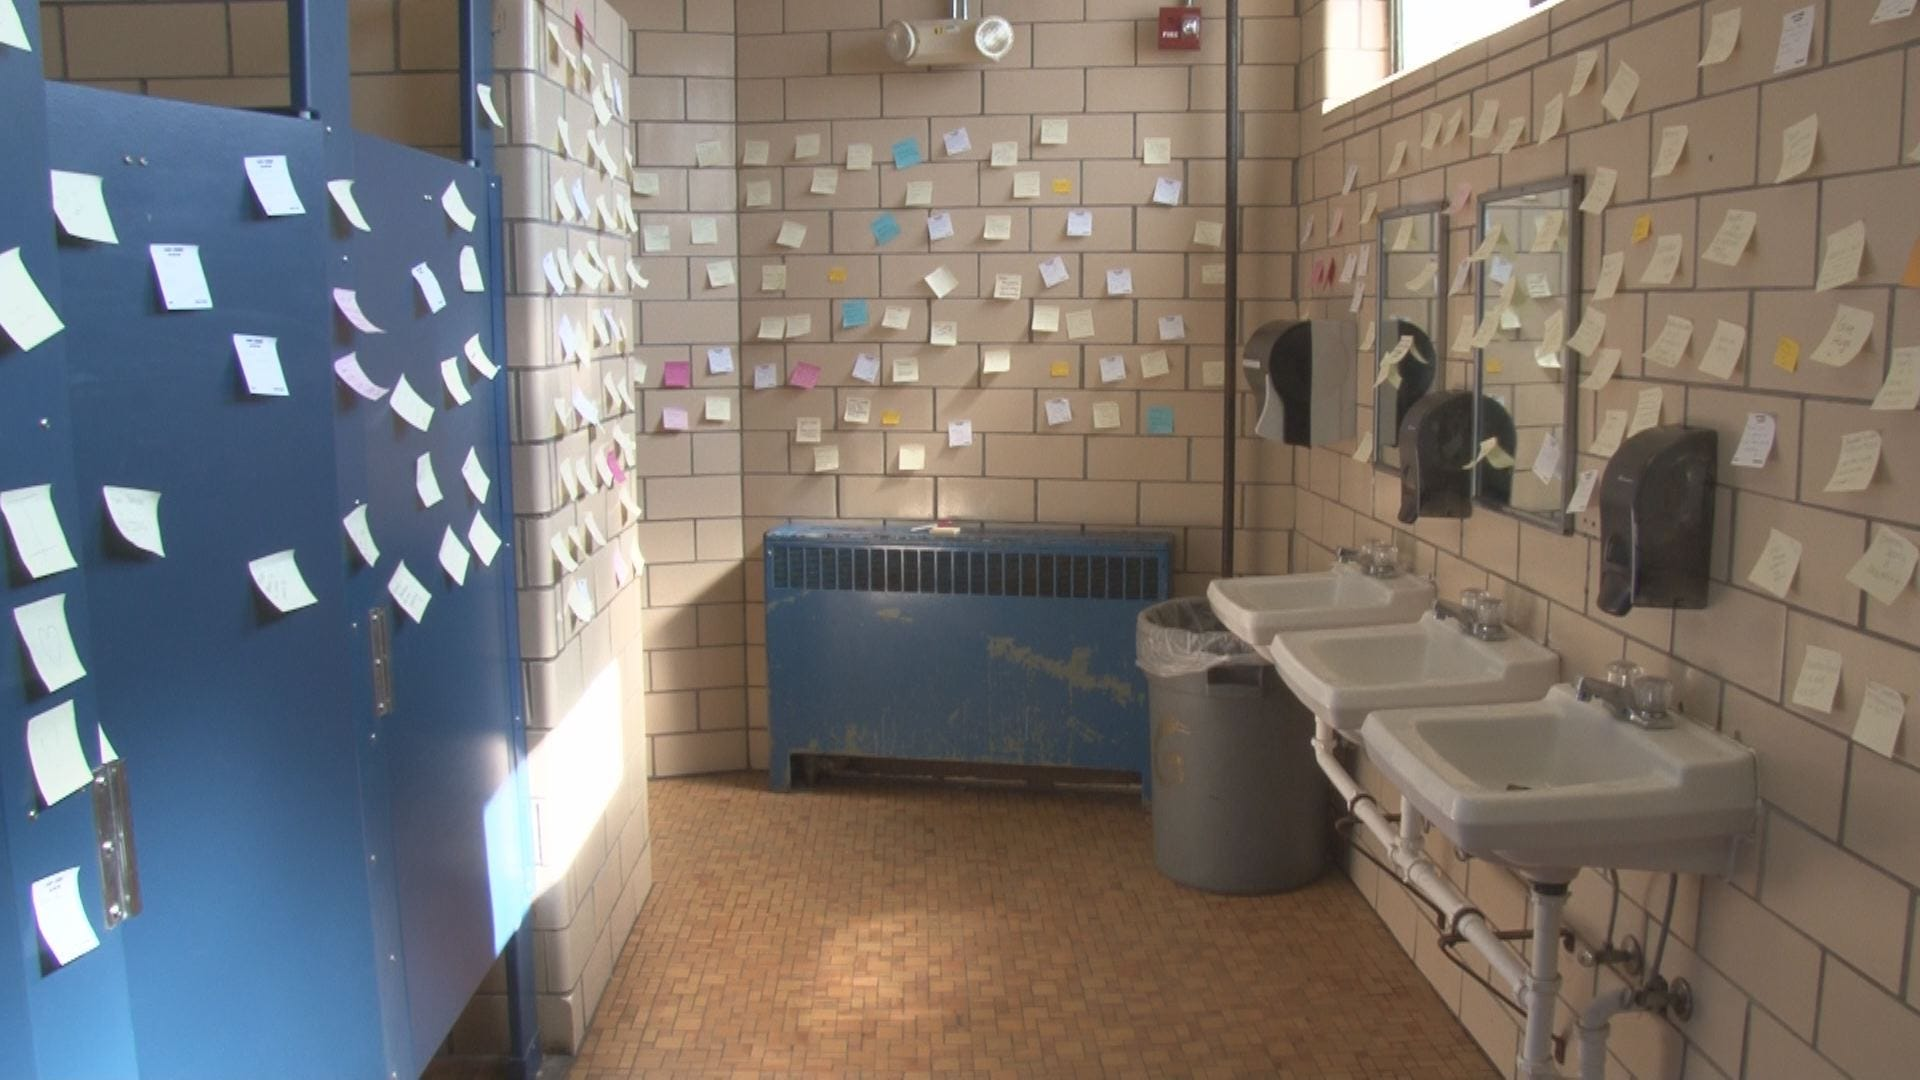 High School Bathroom high school bathroom - interior design meaning